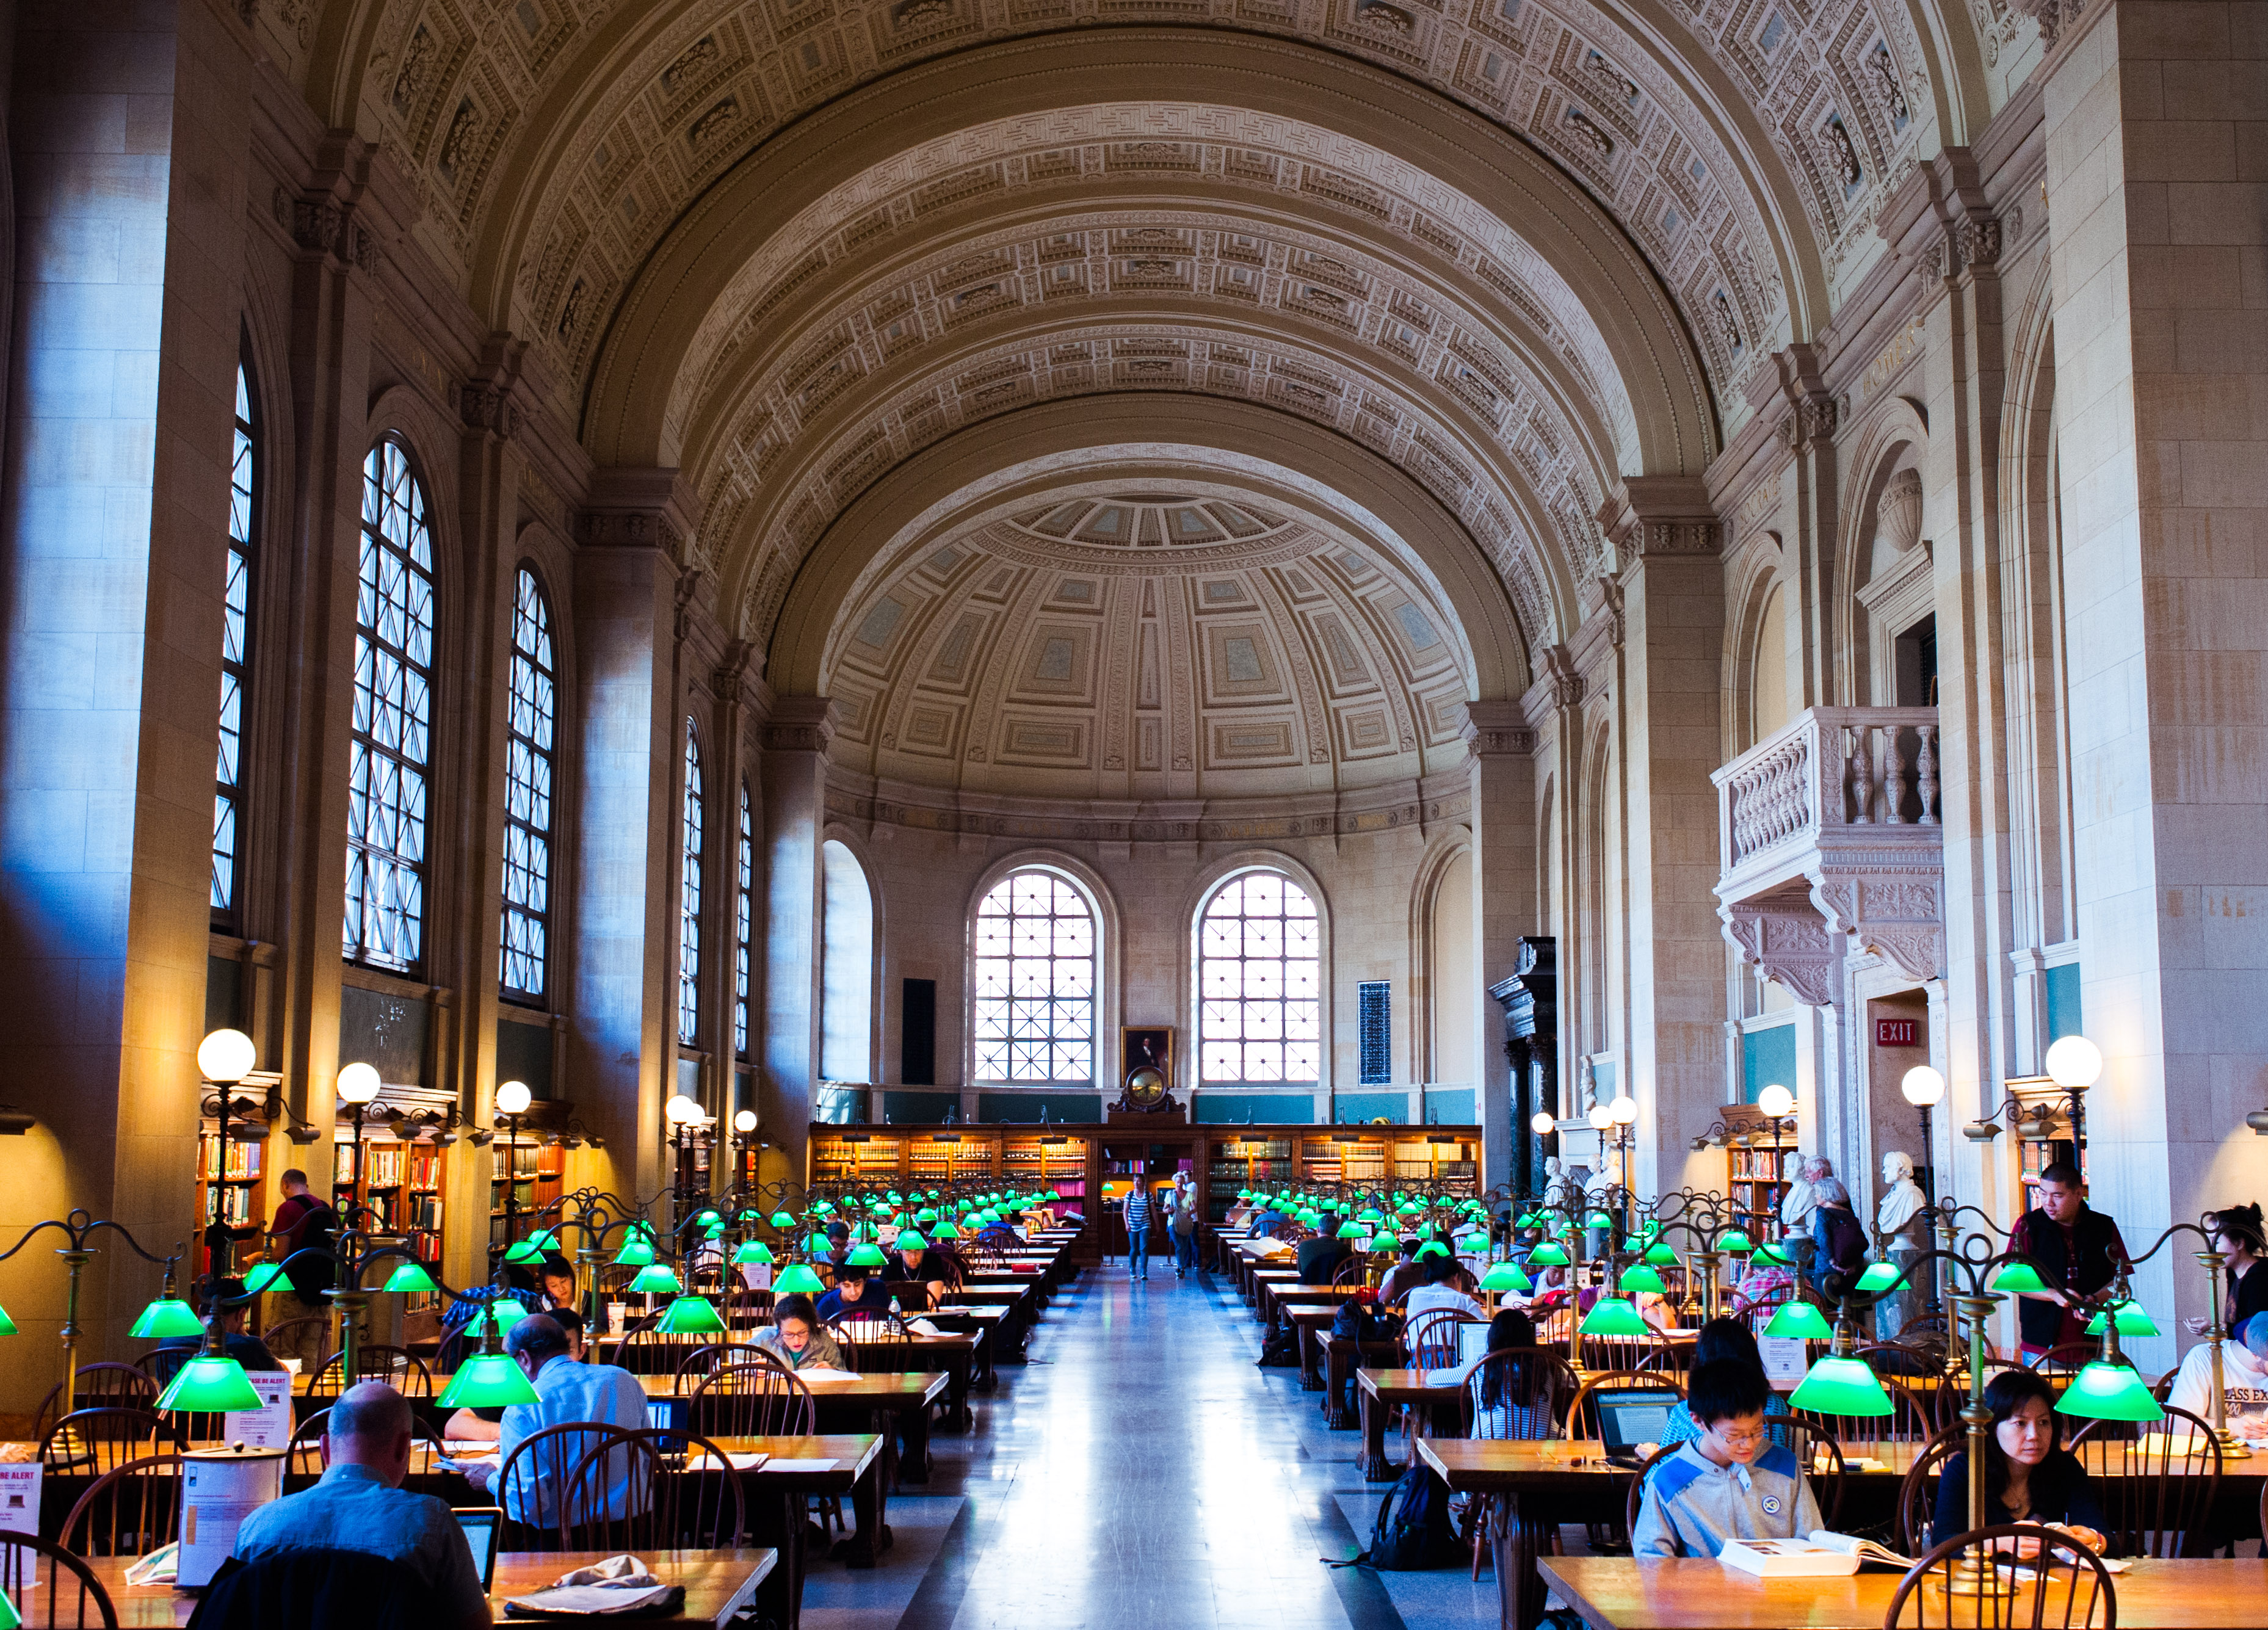 Photograph of the main reading room at the Boston Public Library.